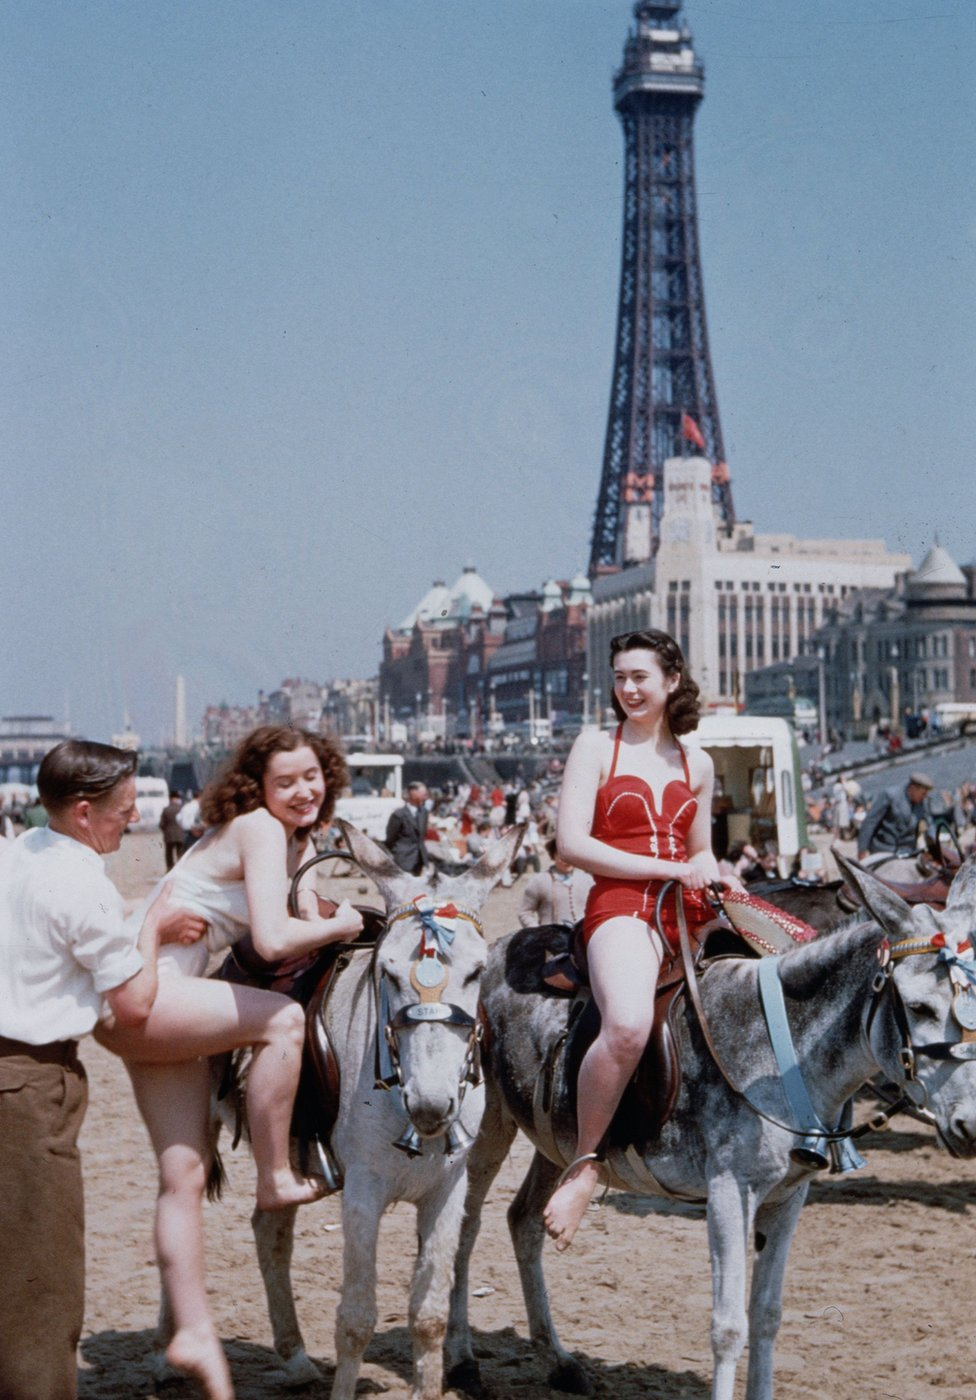 Holiday-makers riding donkeys on the beach at Blackpool